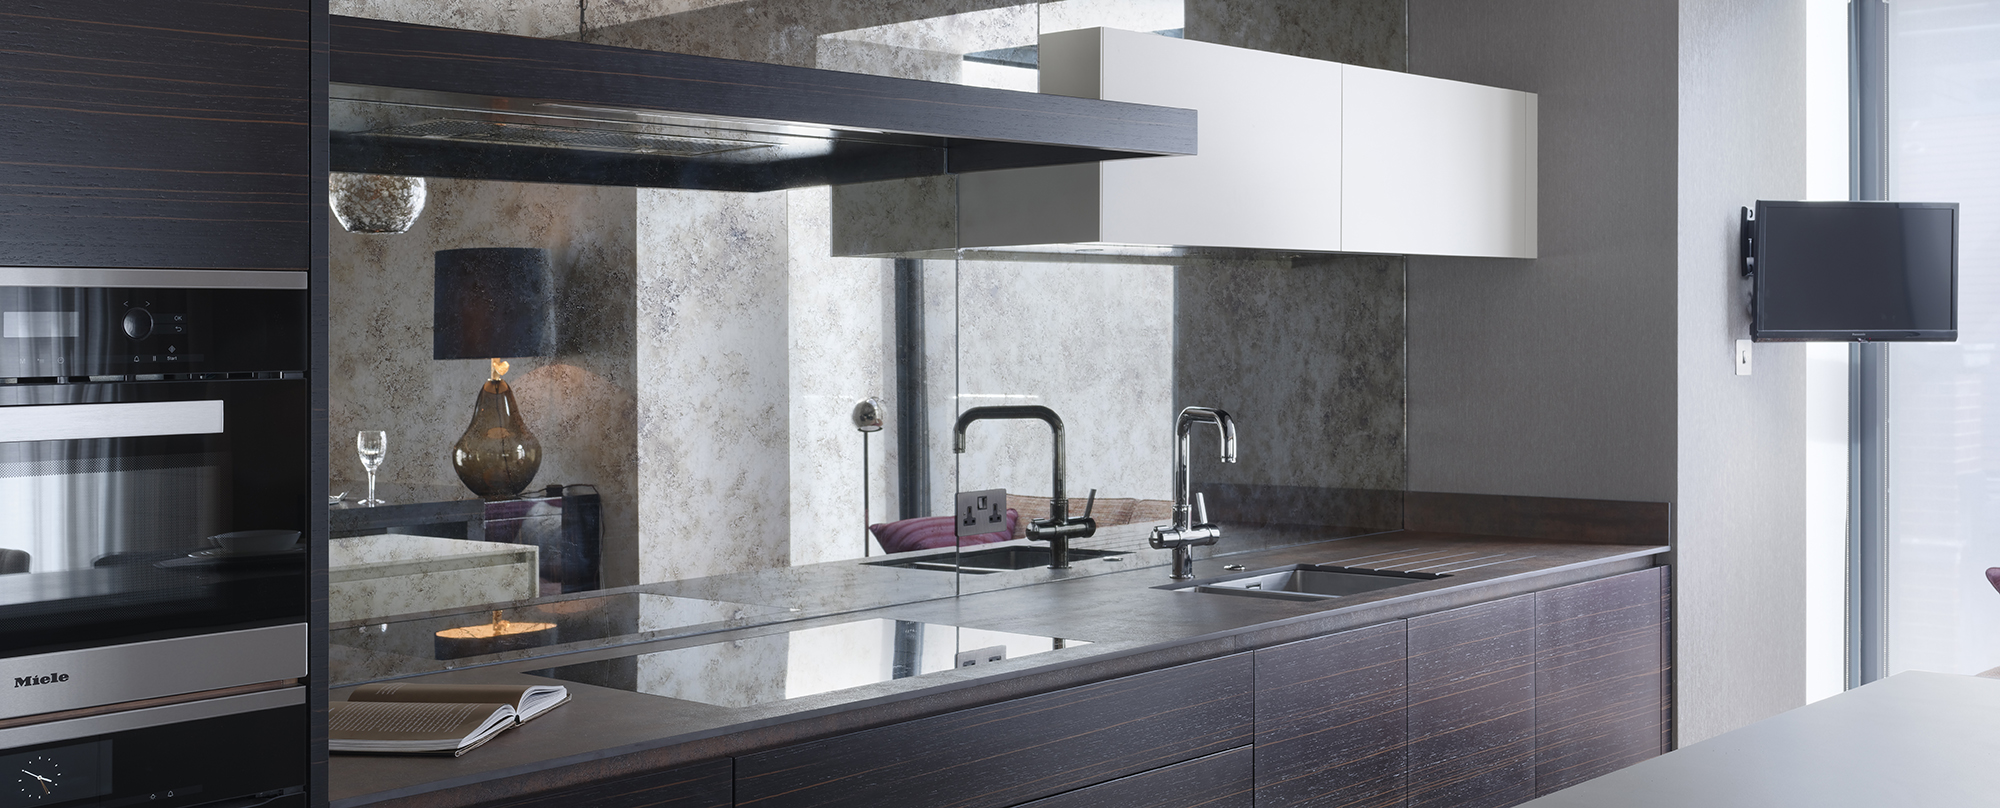 Kitchen design for Chelsea apartment with mirror splashback and modern handleless cabinets